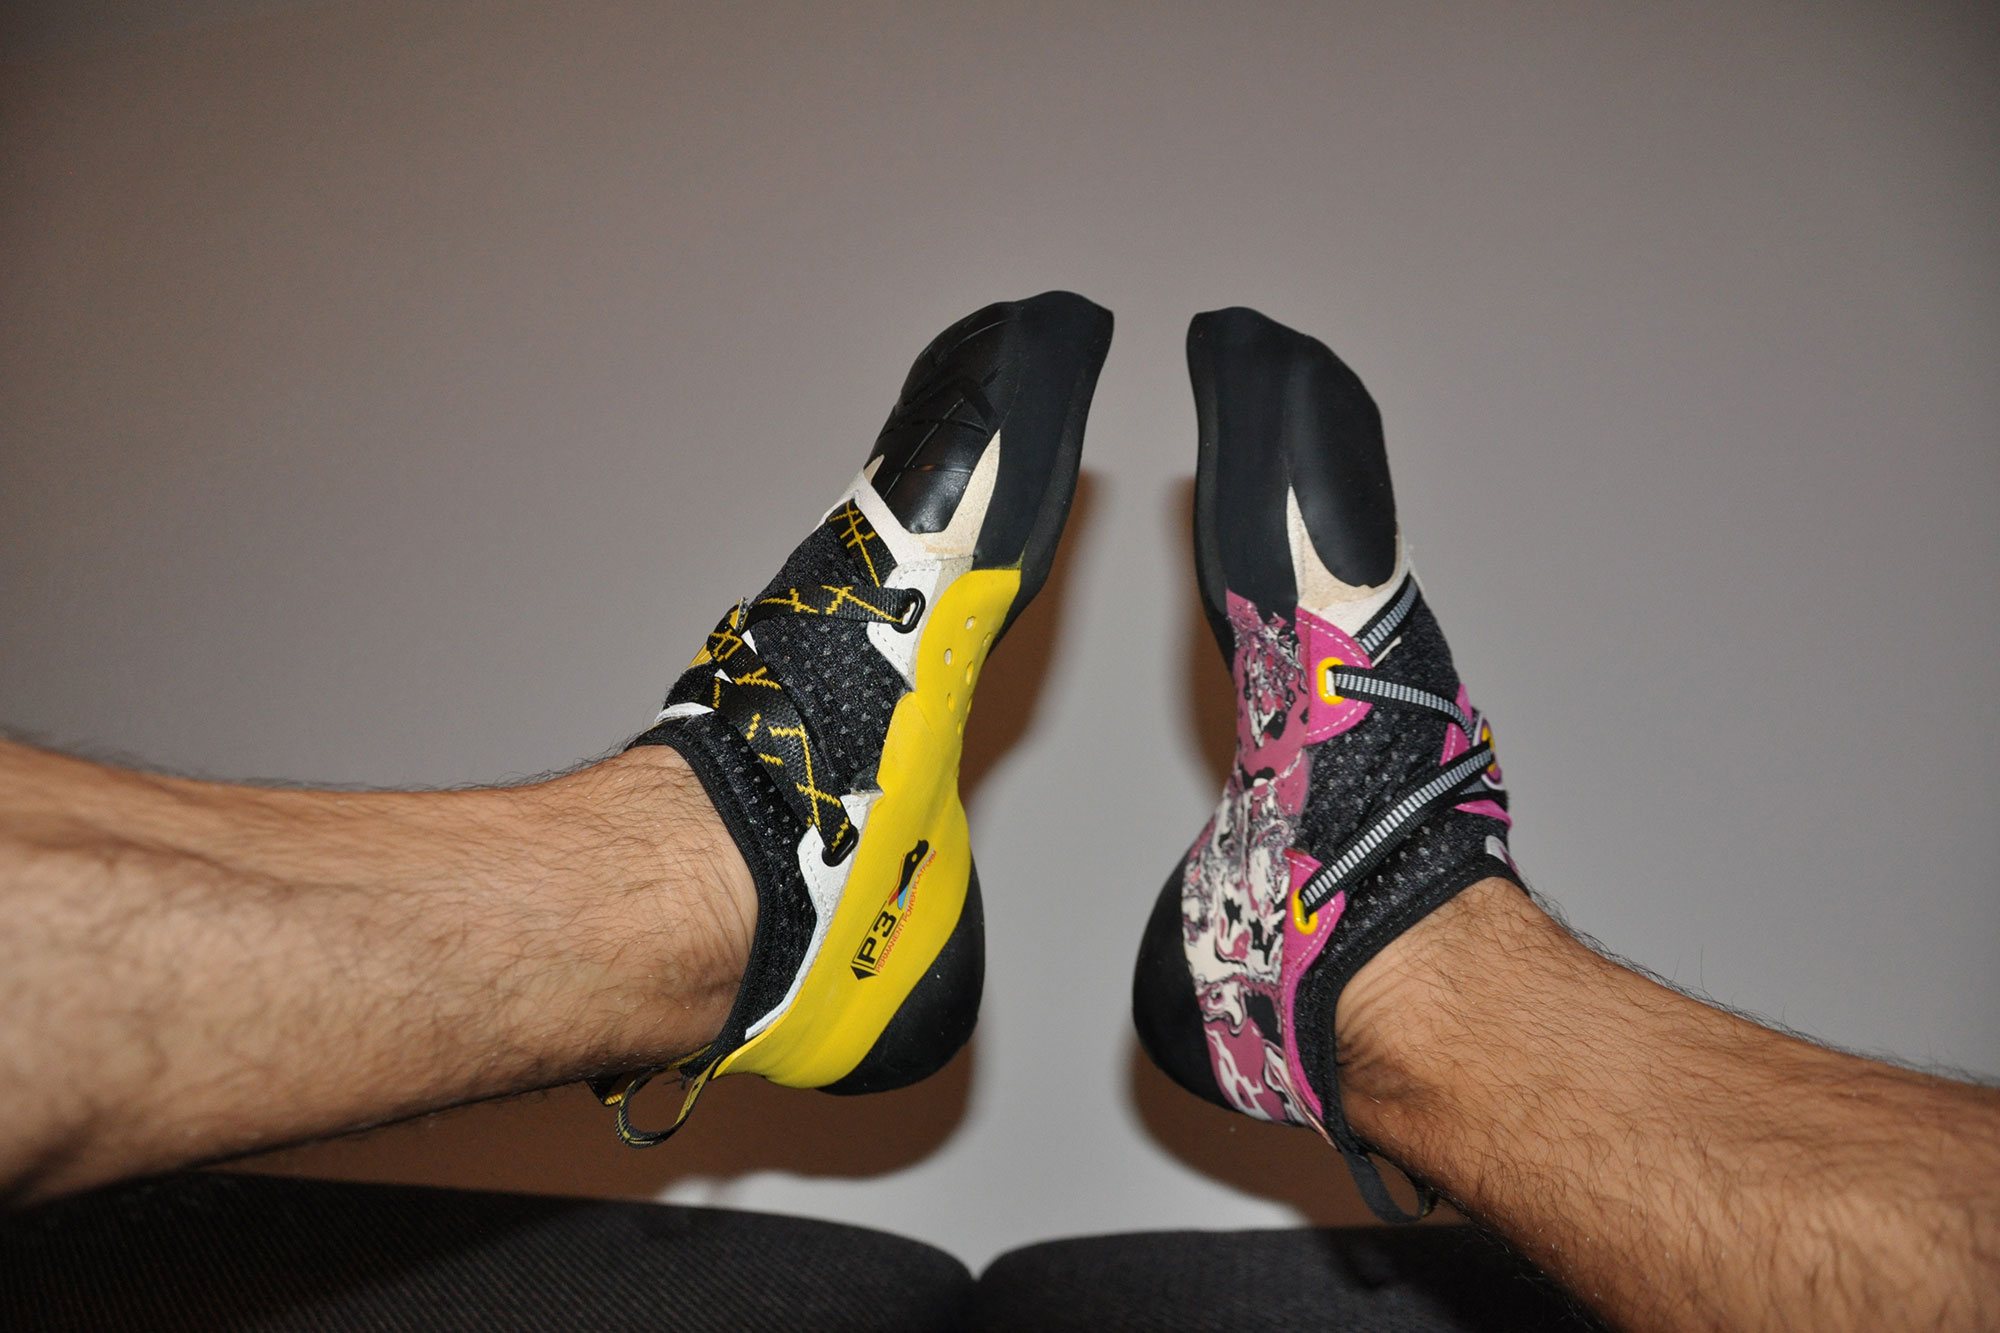 Black Diamond Solution Klettergurt Test : La sportiva solution kletterschuhe im test